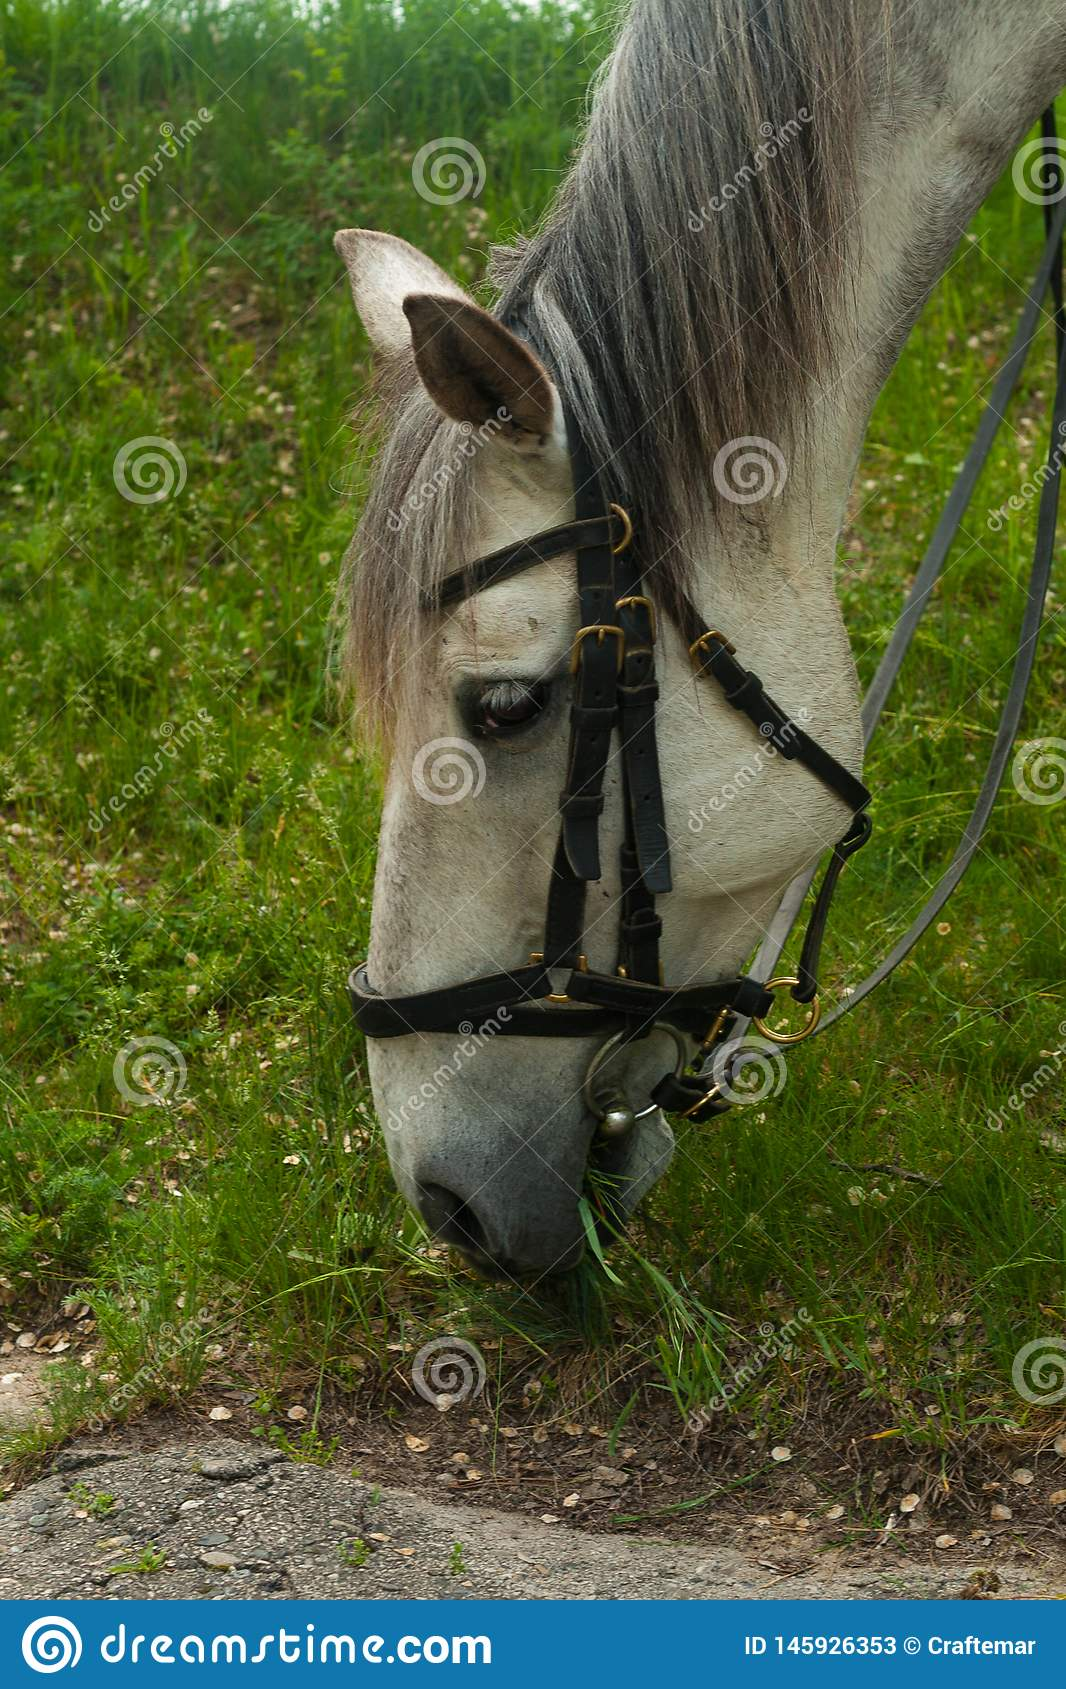 White horse. white gray horse grazing on the green grass in the forest, horse harnessed in leather harness, close up portrait